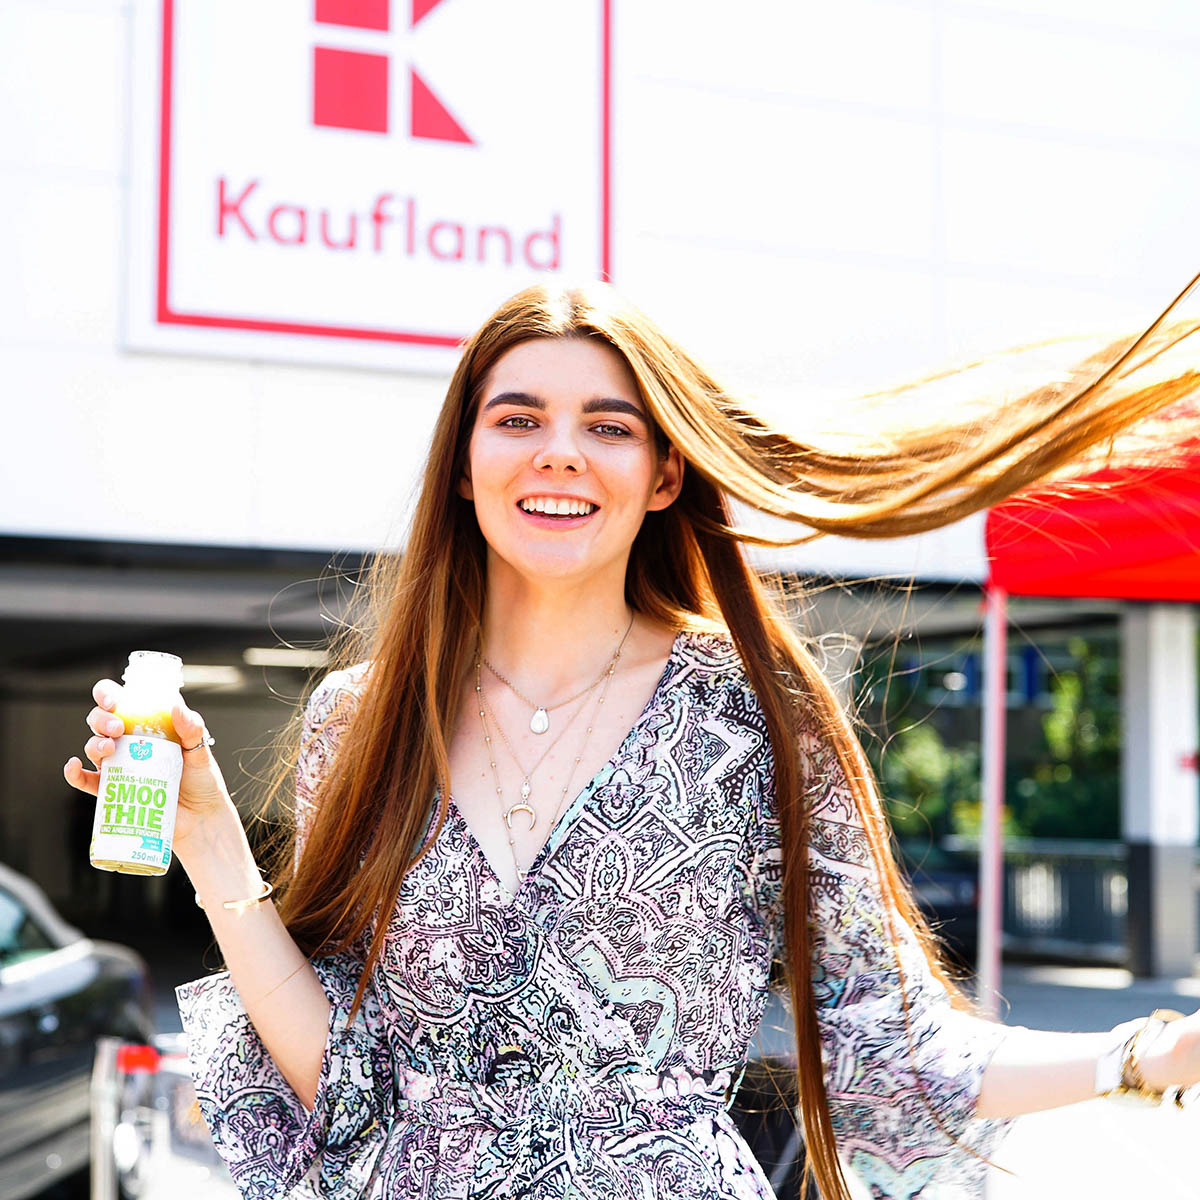 K-to go for Kaufland, shot in Berlin